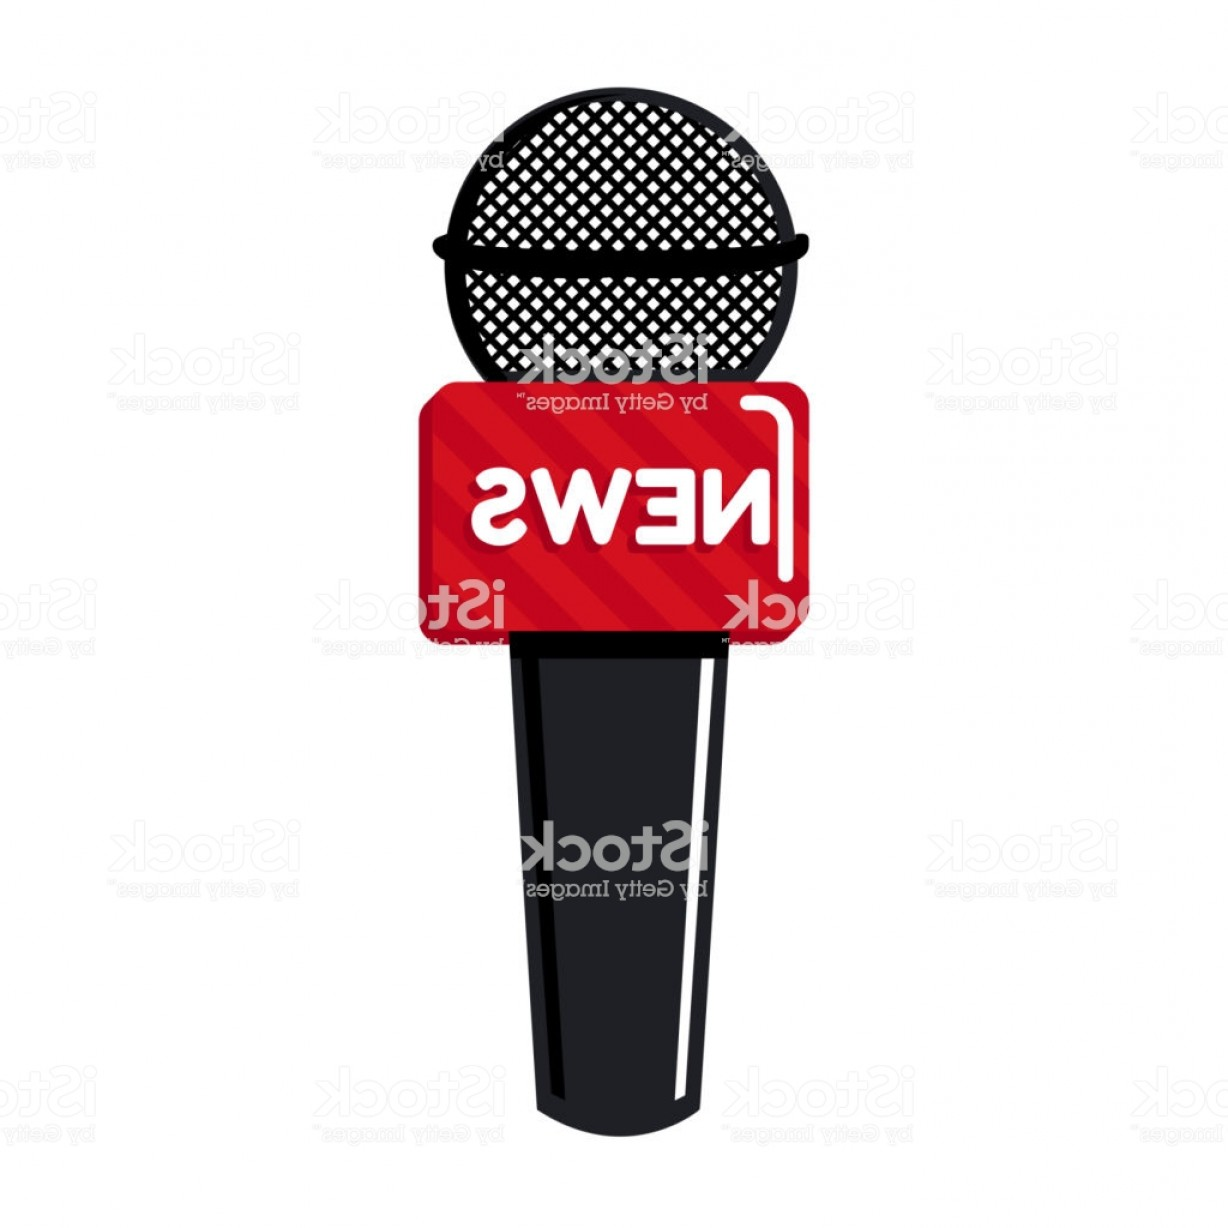 Mics Vector Designs: Vector Illustration Of Microphone Icon Breaking News Concept Gm